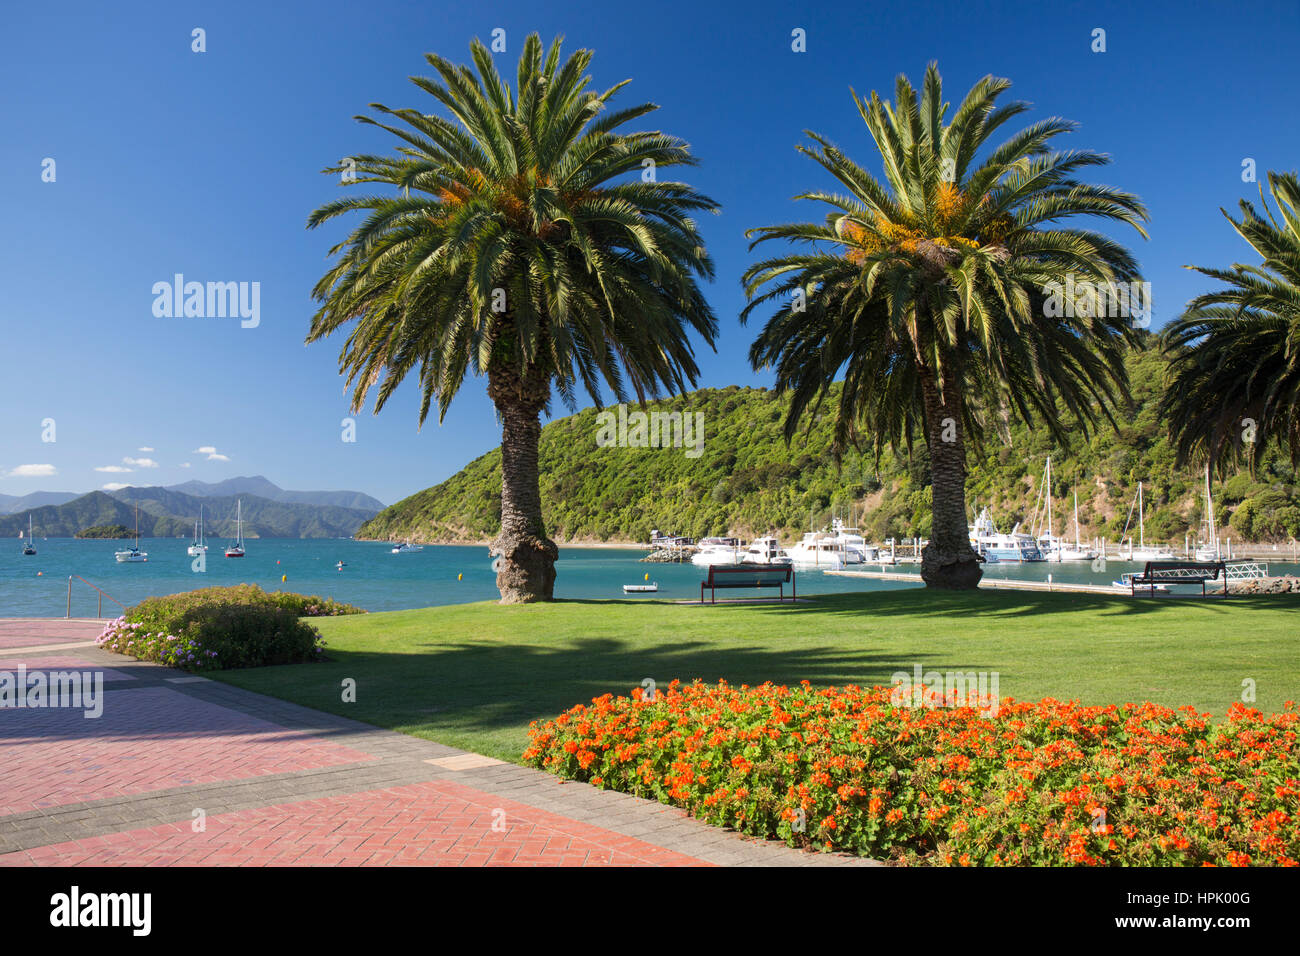 Picton, Marlborough, New Zealand. View from gardens to the palm-lined waterfront of Picton Harbour and distant hills - Stock Image